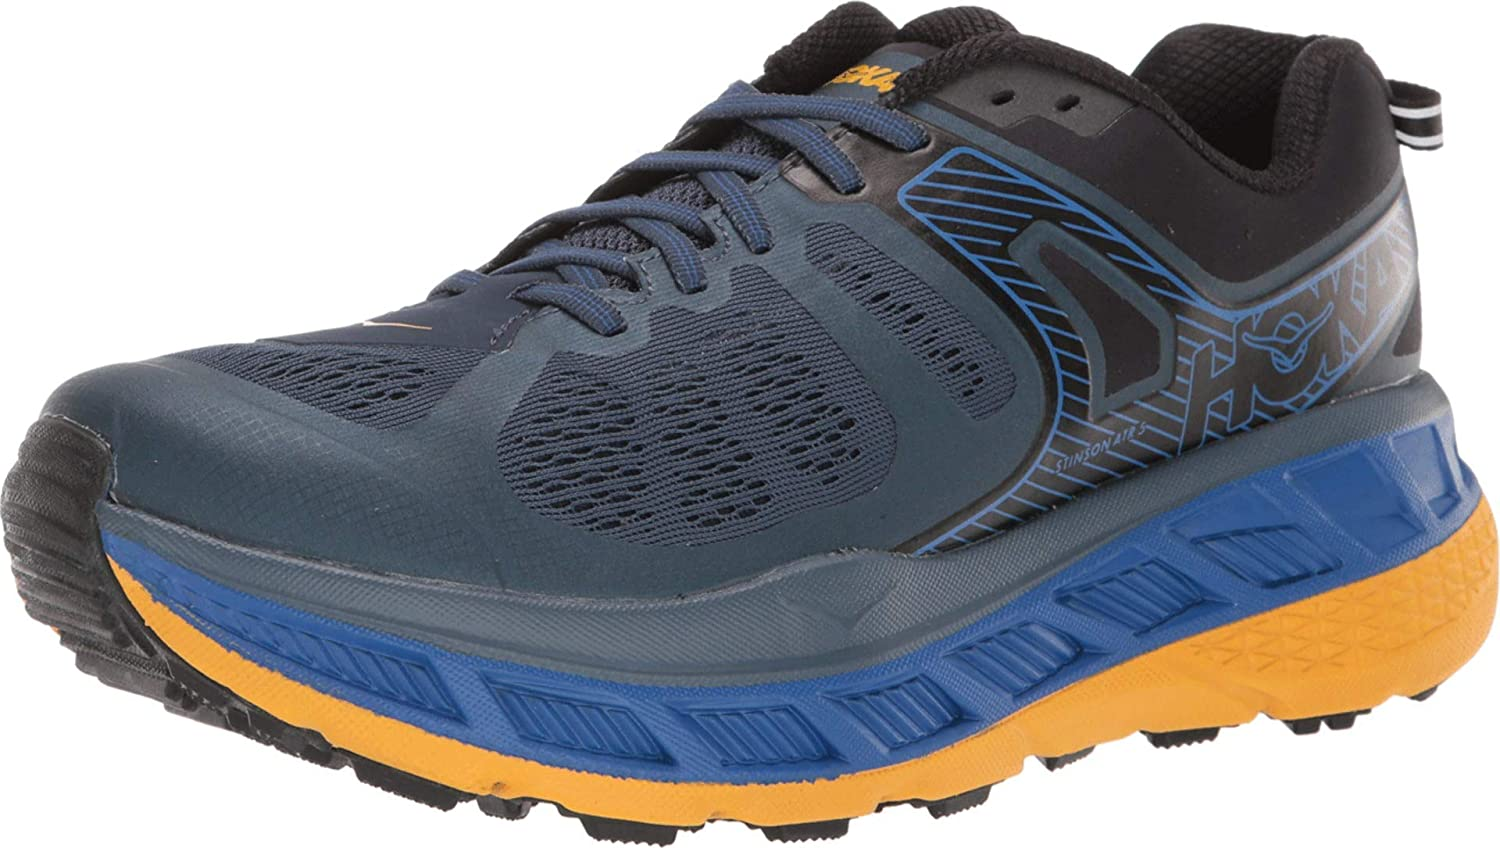 Women's Hoka One One Stinson Trail